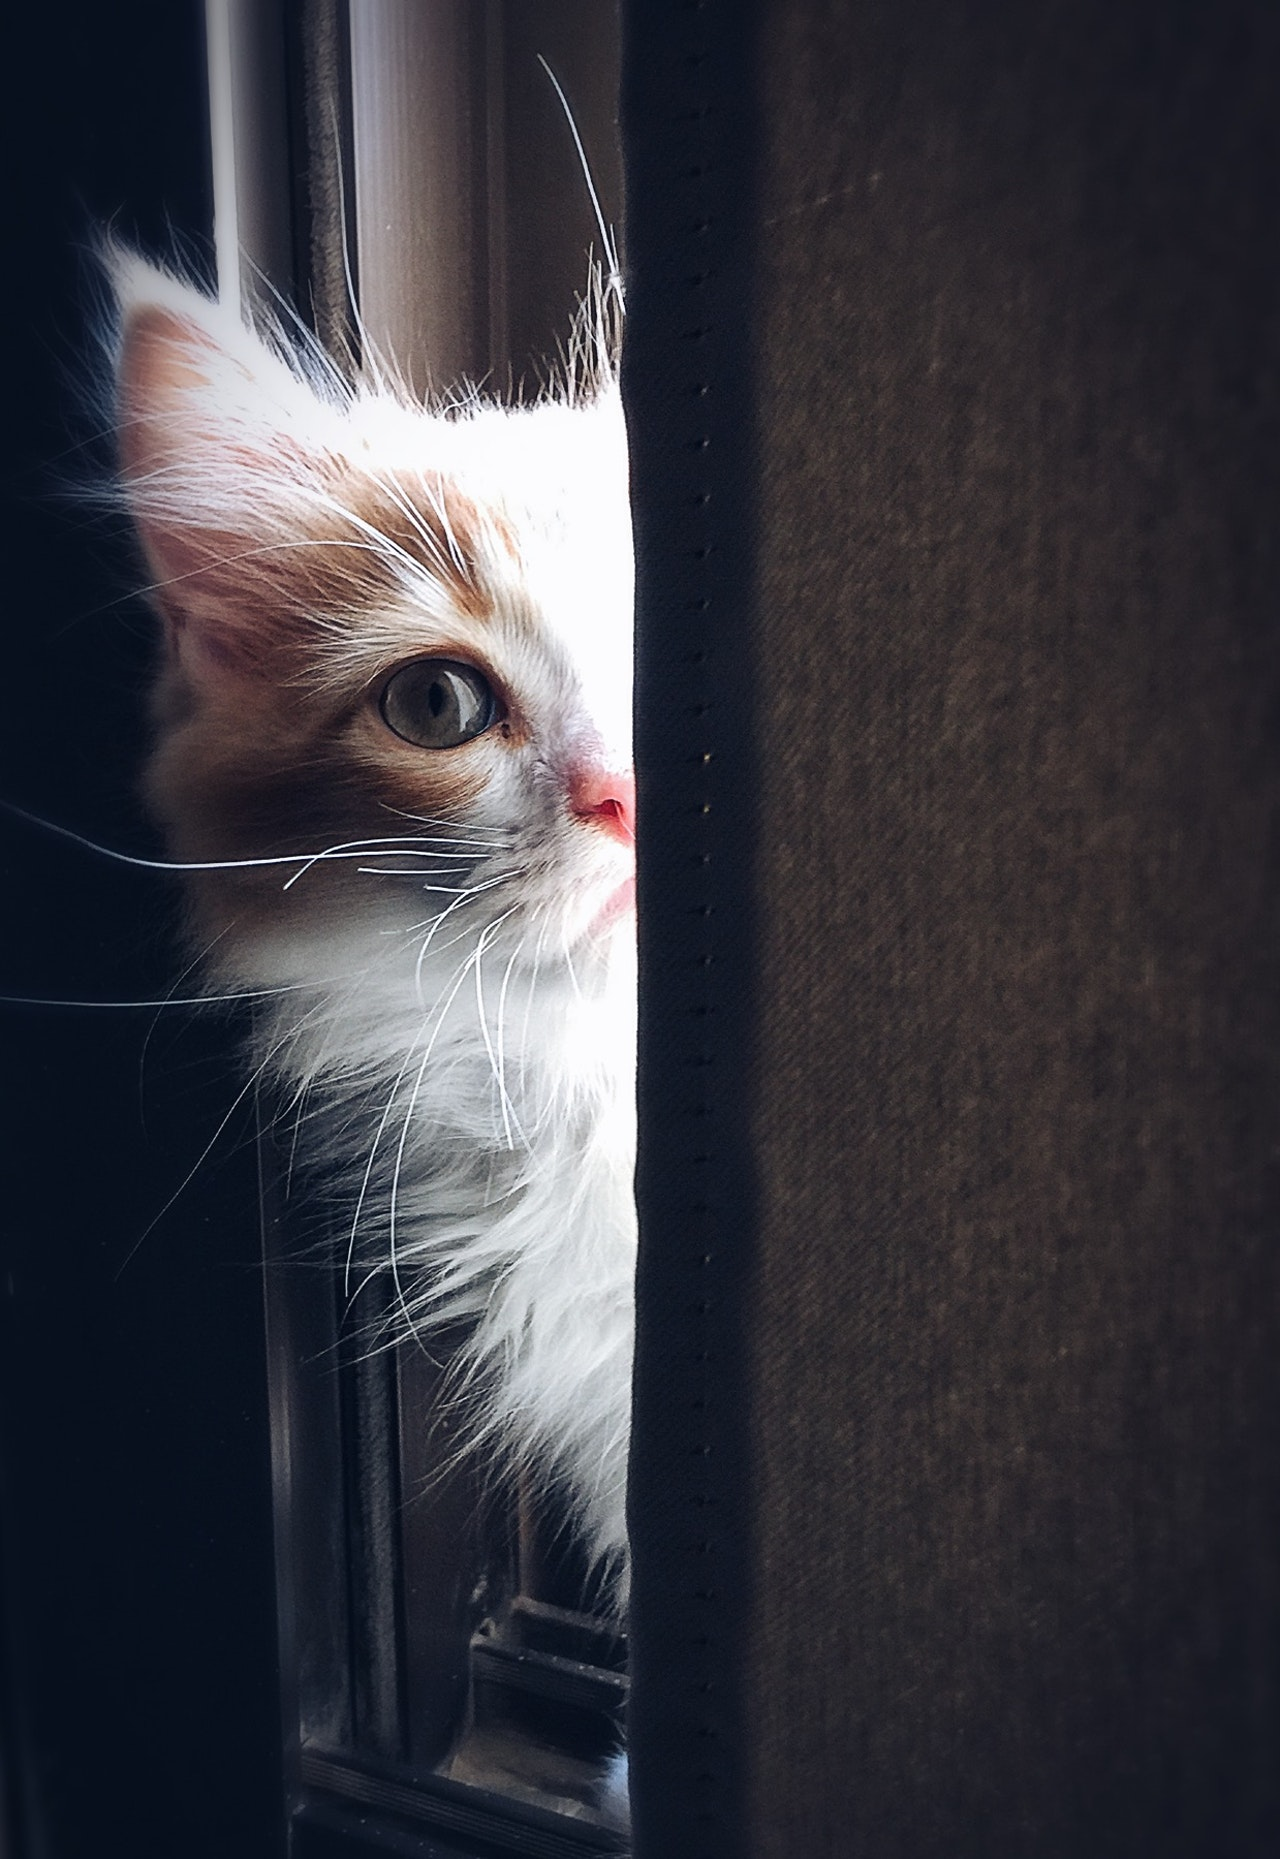 Where can I buy pet food?